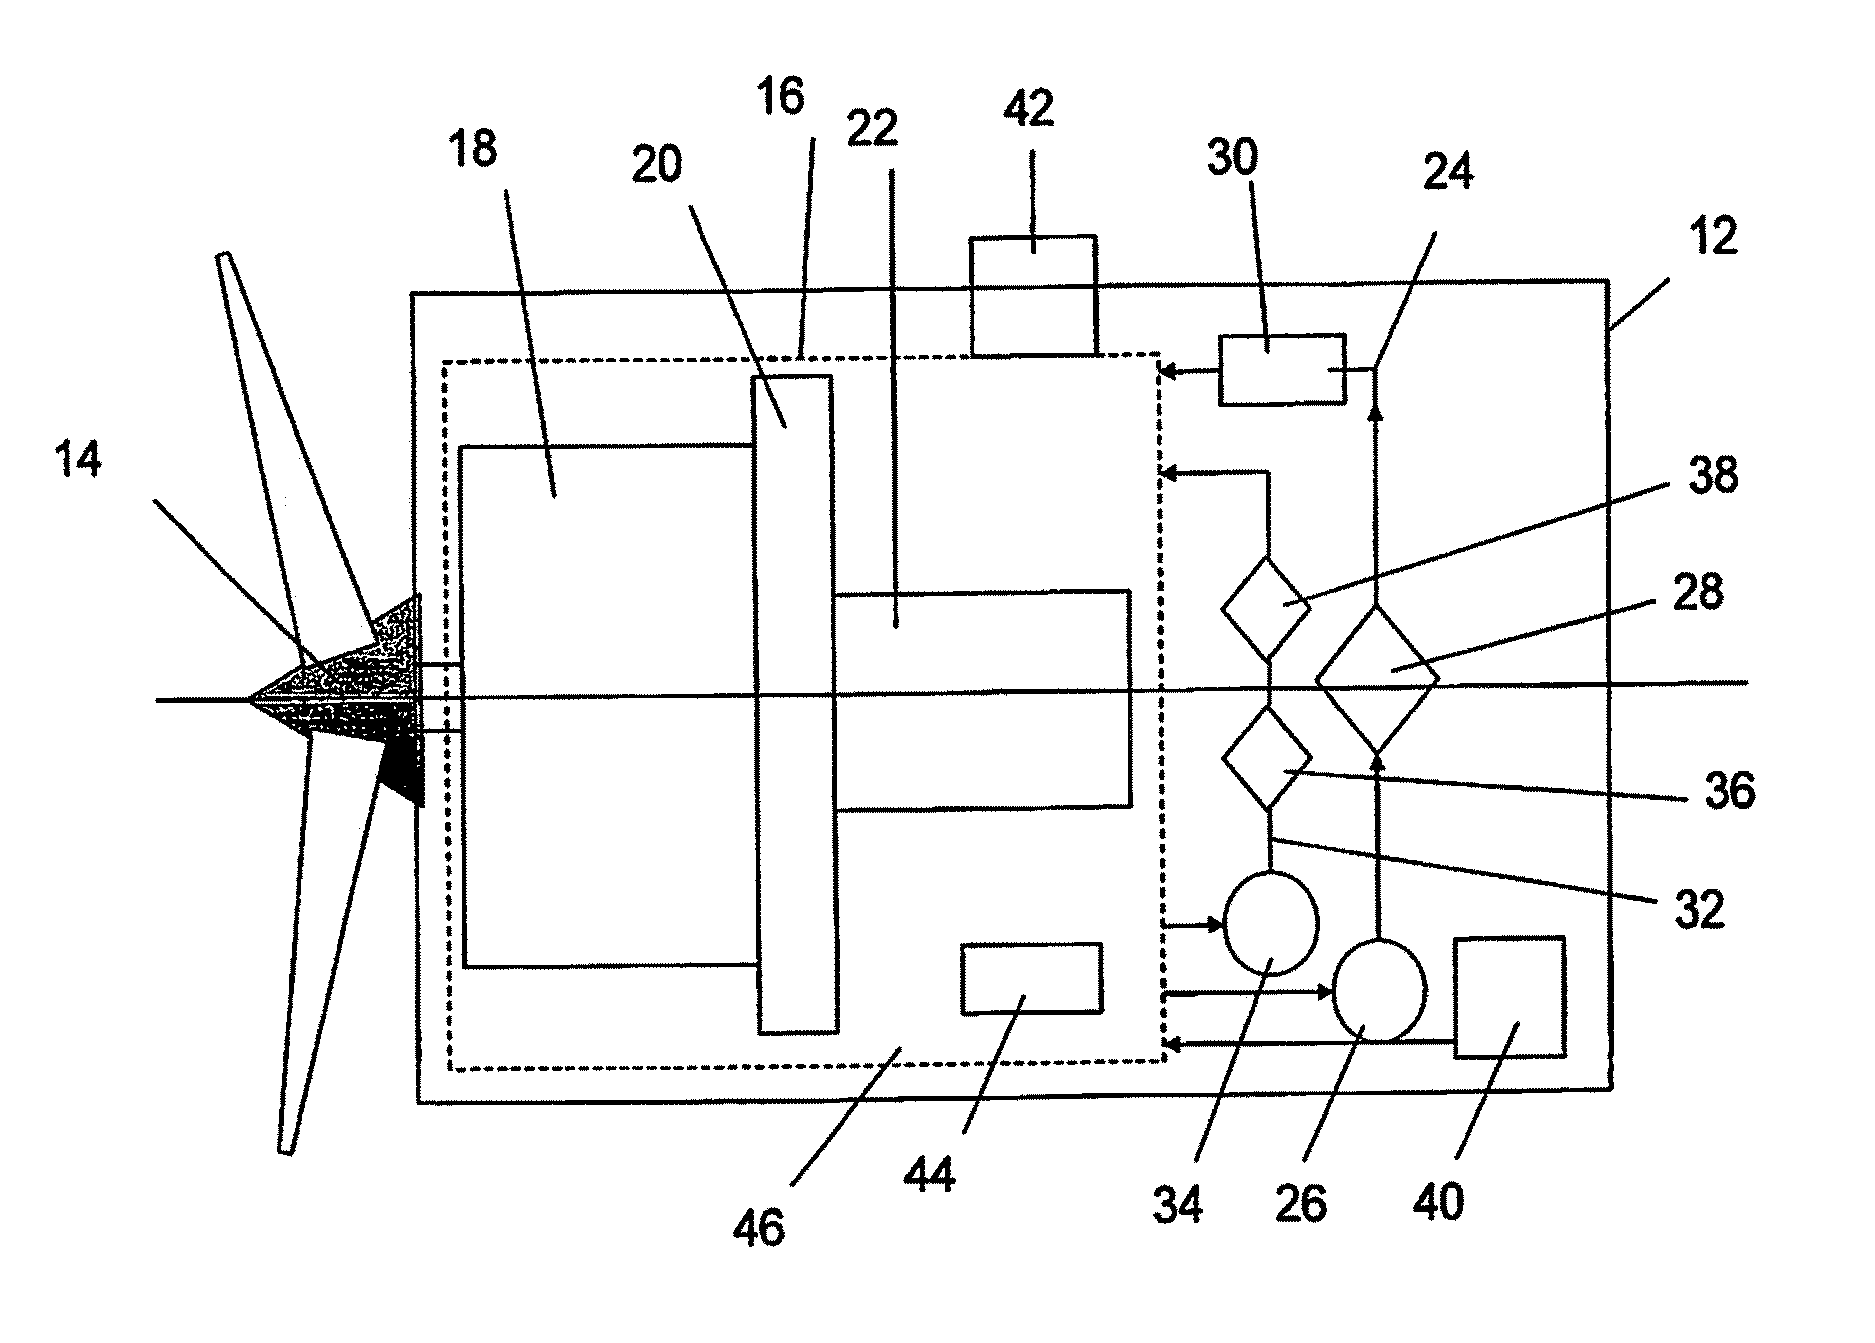 hight resolution of 14 354 843 wind turbine gearbox lubrication system united states